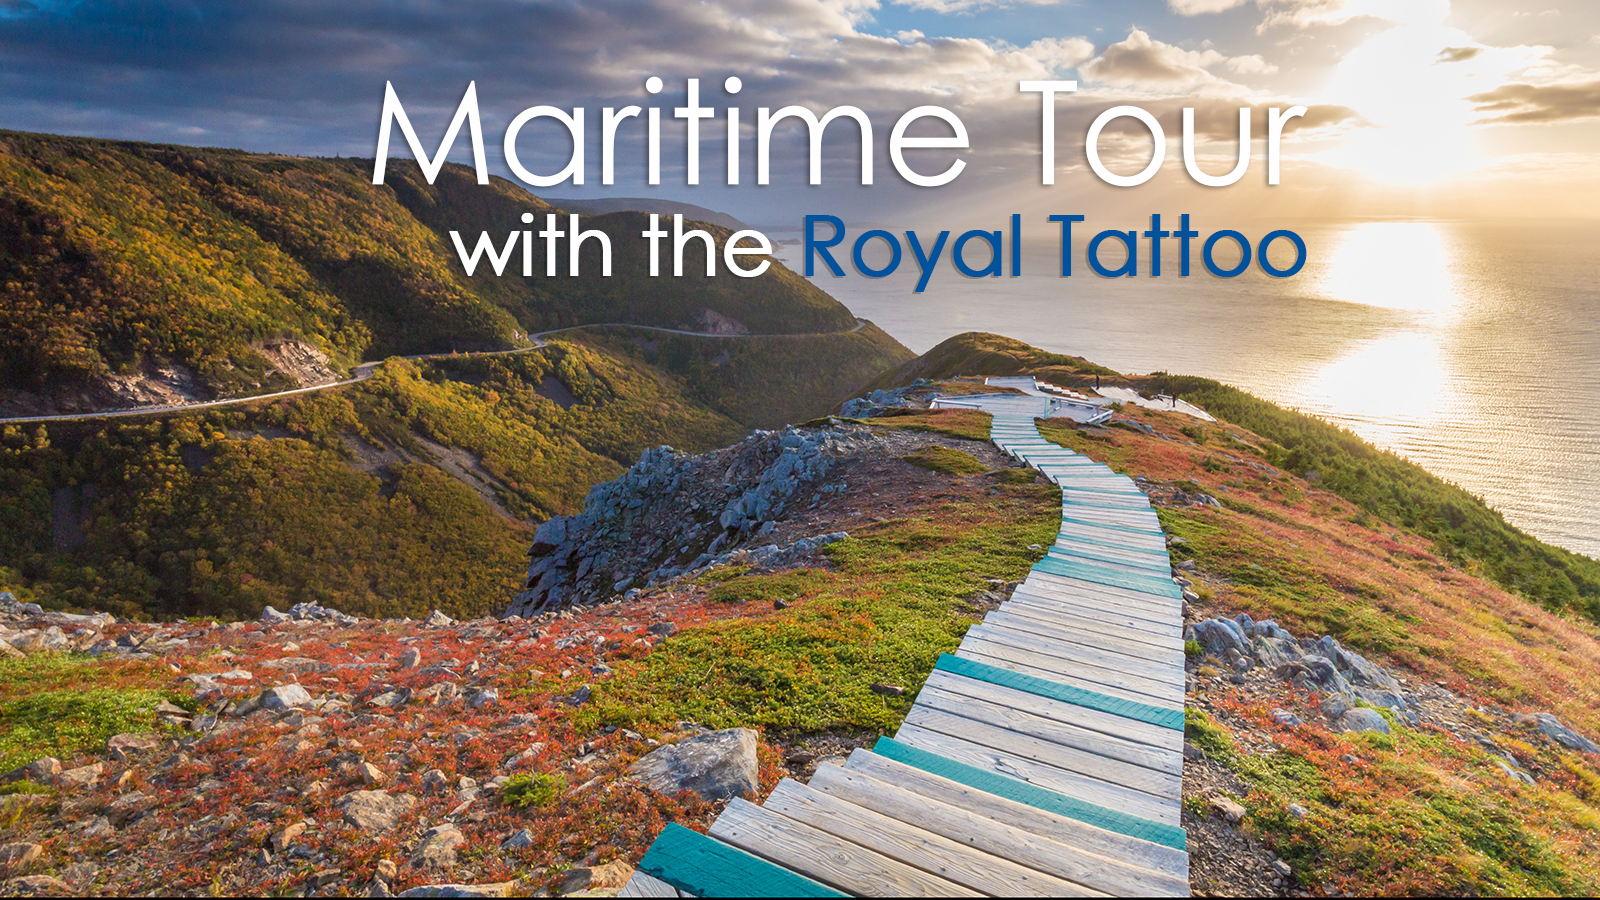 Maritime Tour with the Royal Tattoo